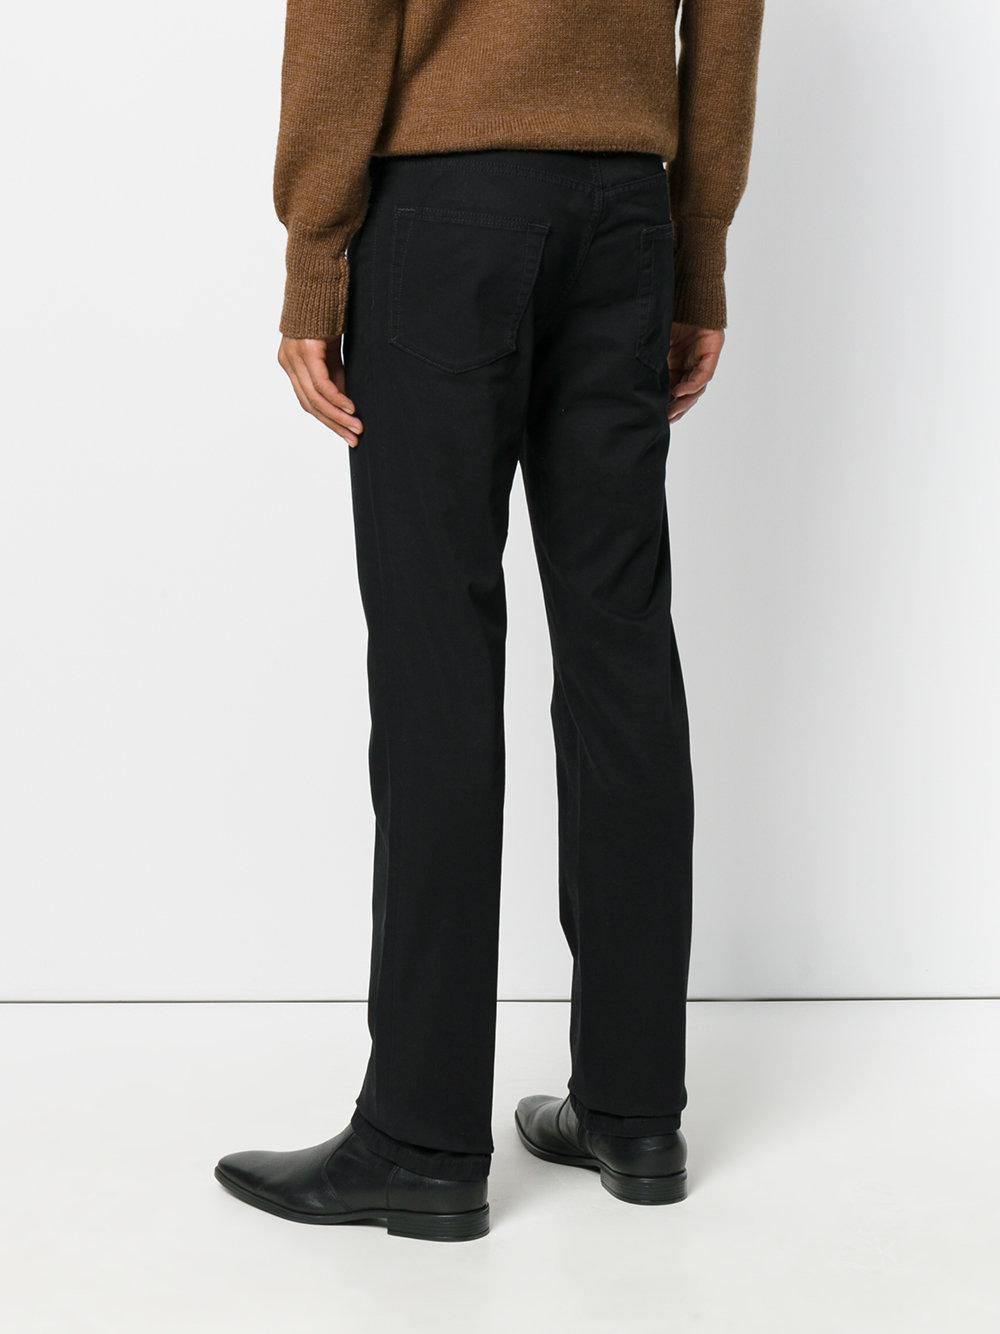 Brioni Straight-leg Denim Jeans in Black for Men